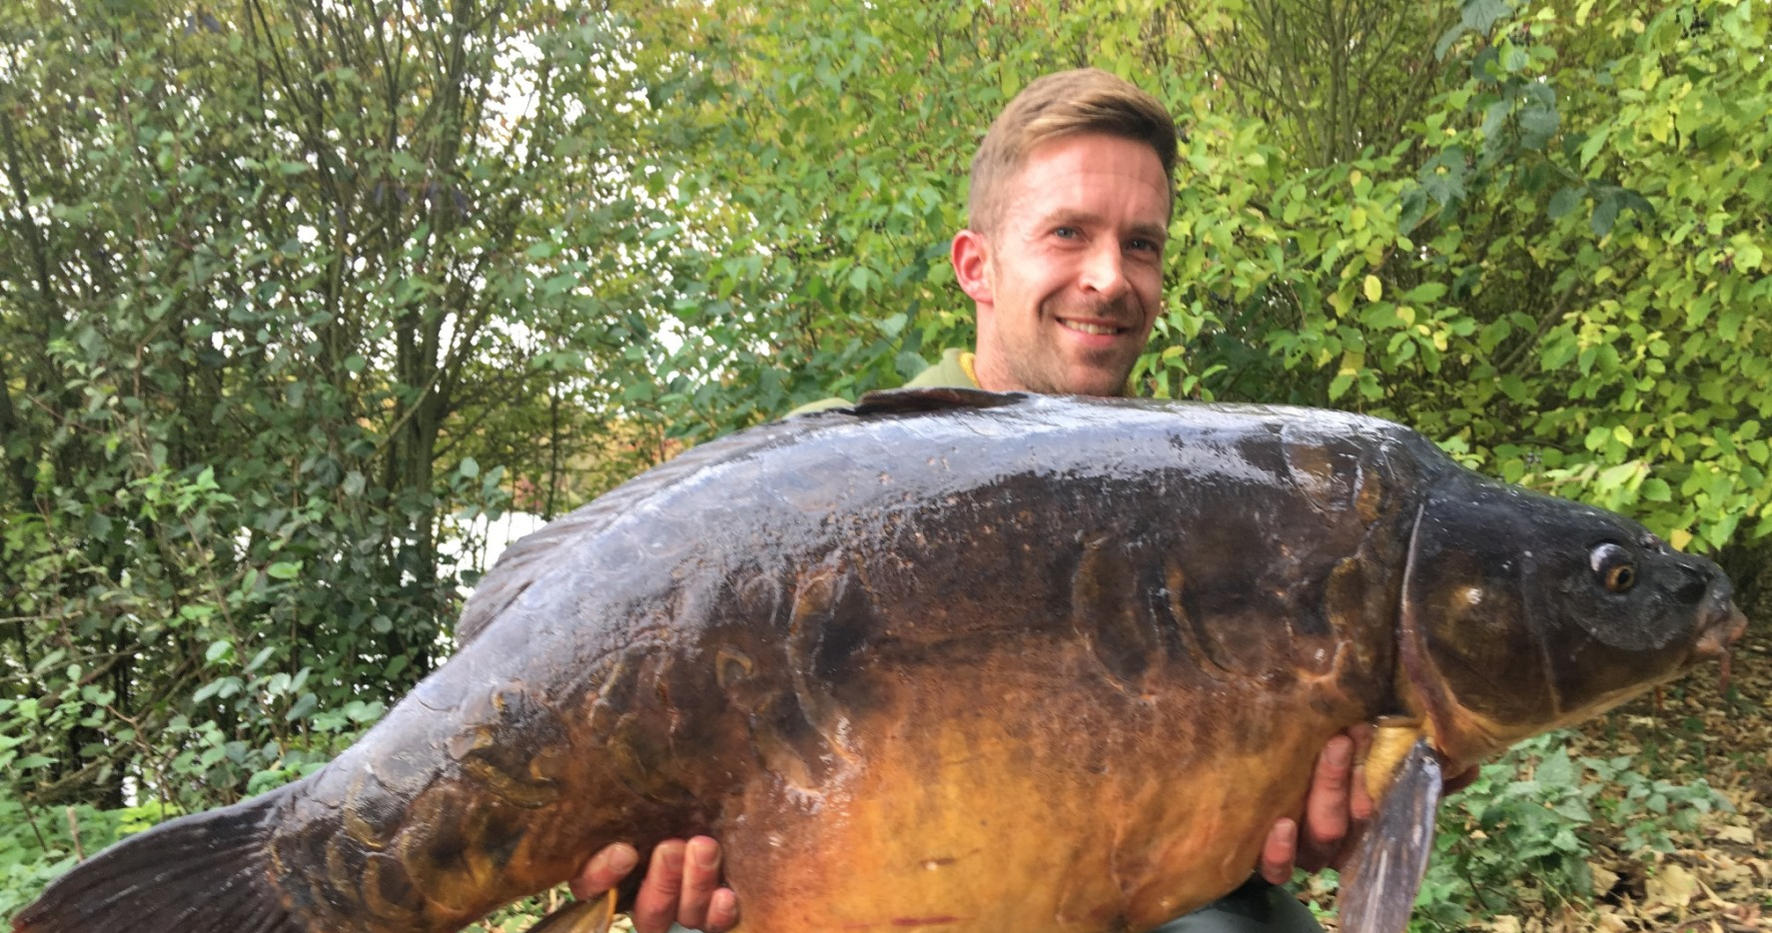 20. A stunning Mirror for Peg 27